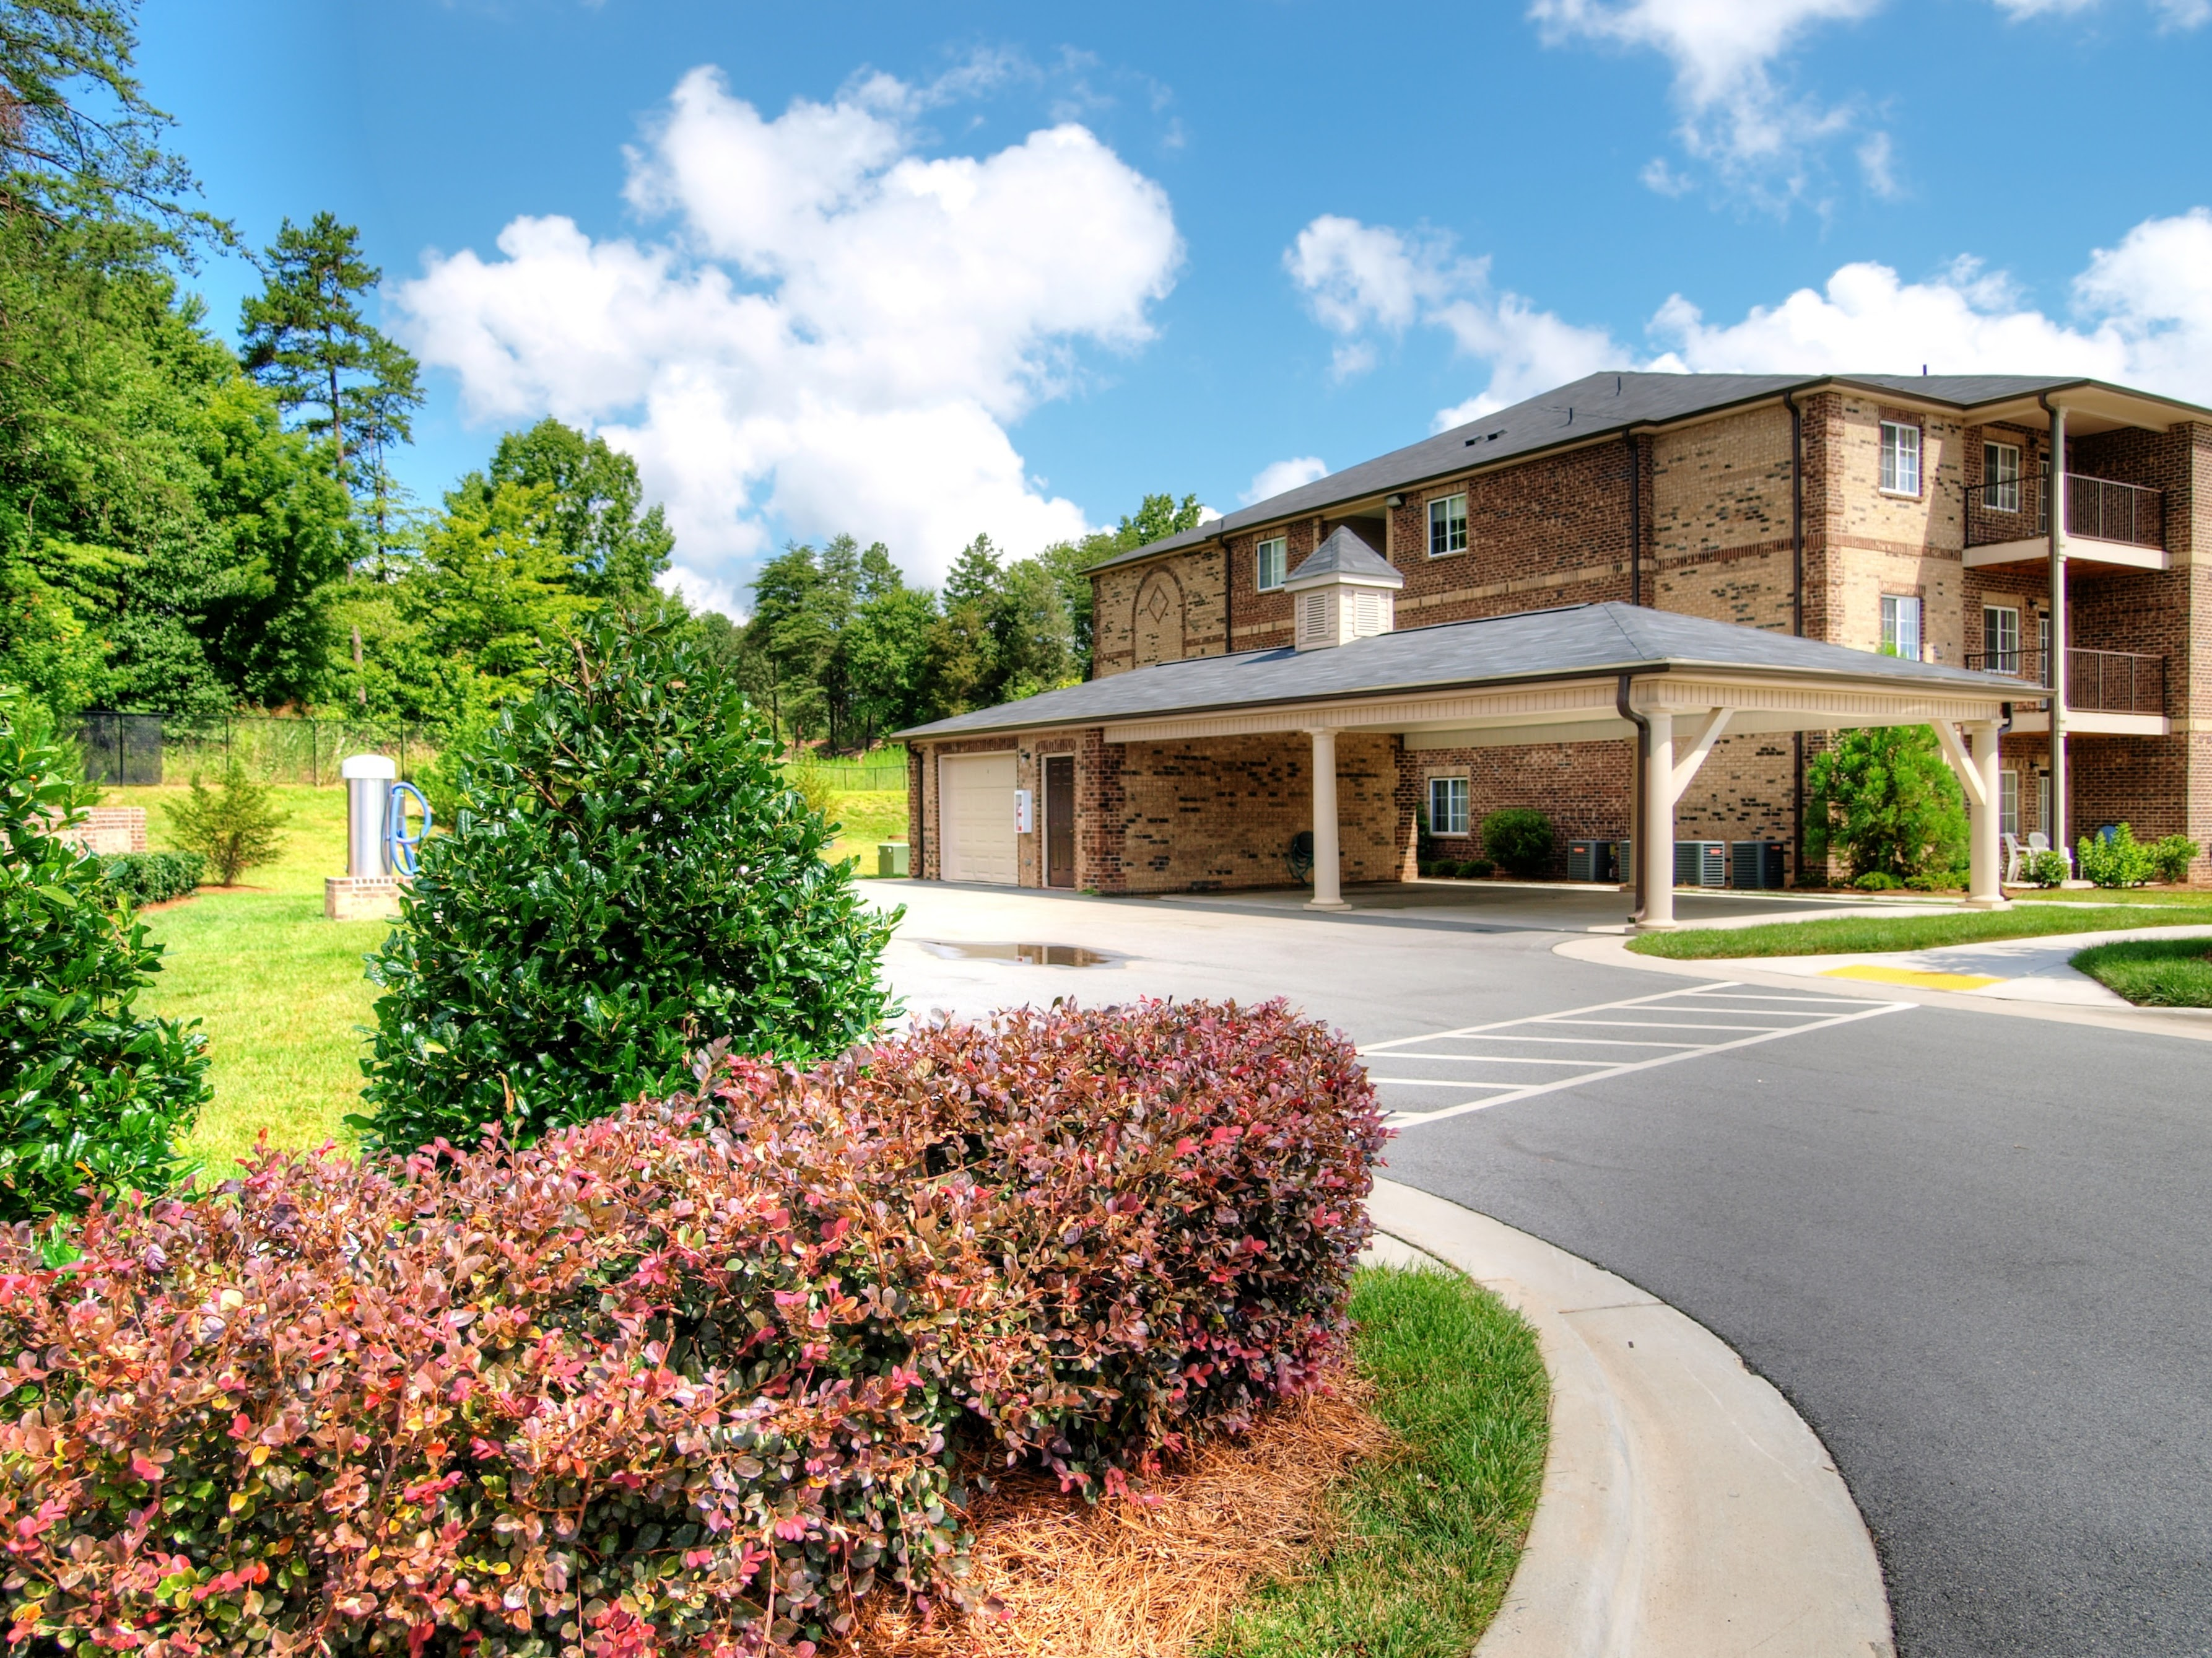 Hayleigh Village Apartments In Greensboro Nc 336 553 1